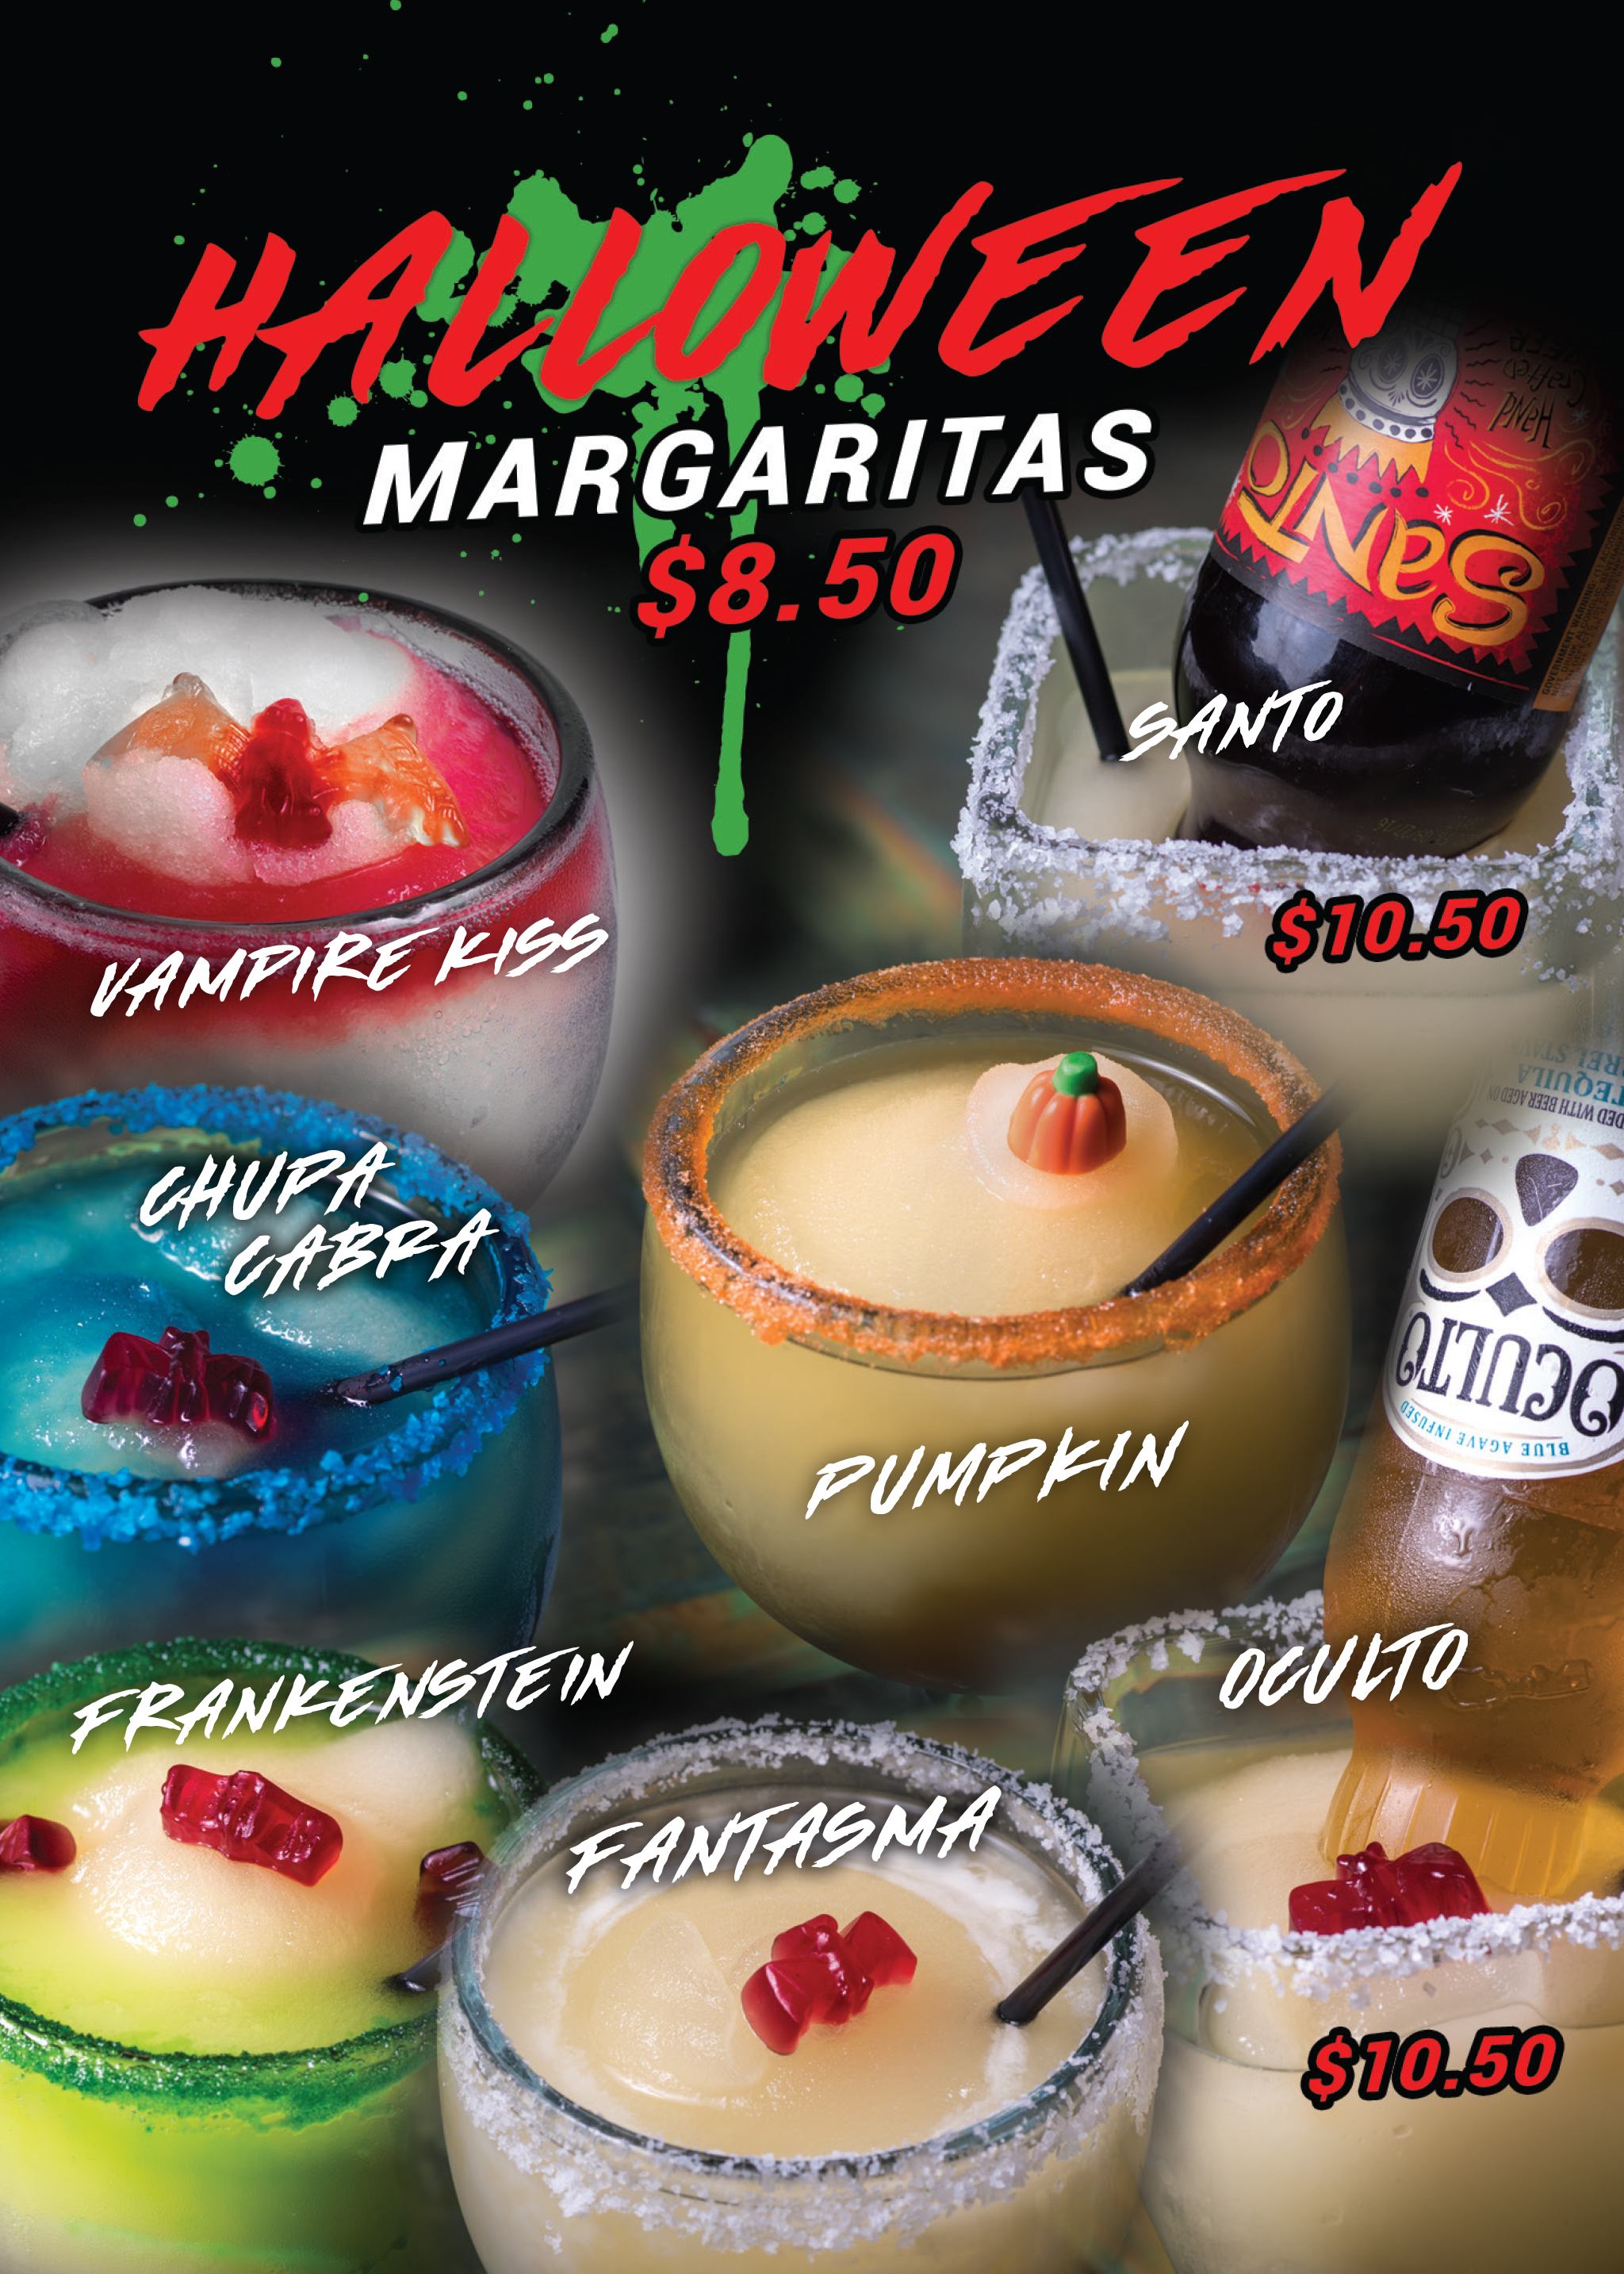 Pueblo Viejo Halloween Margartias